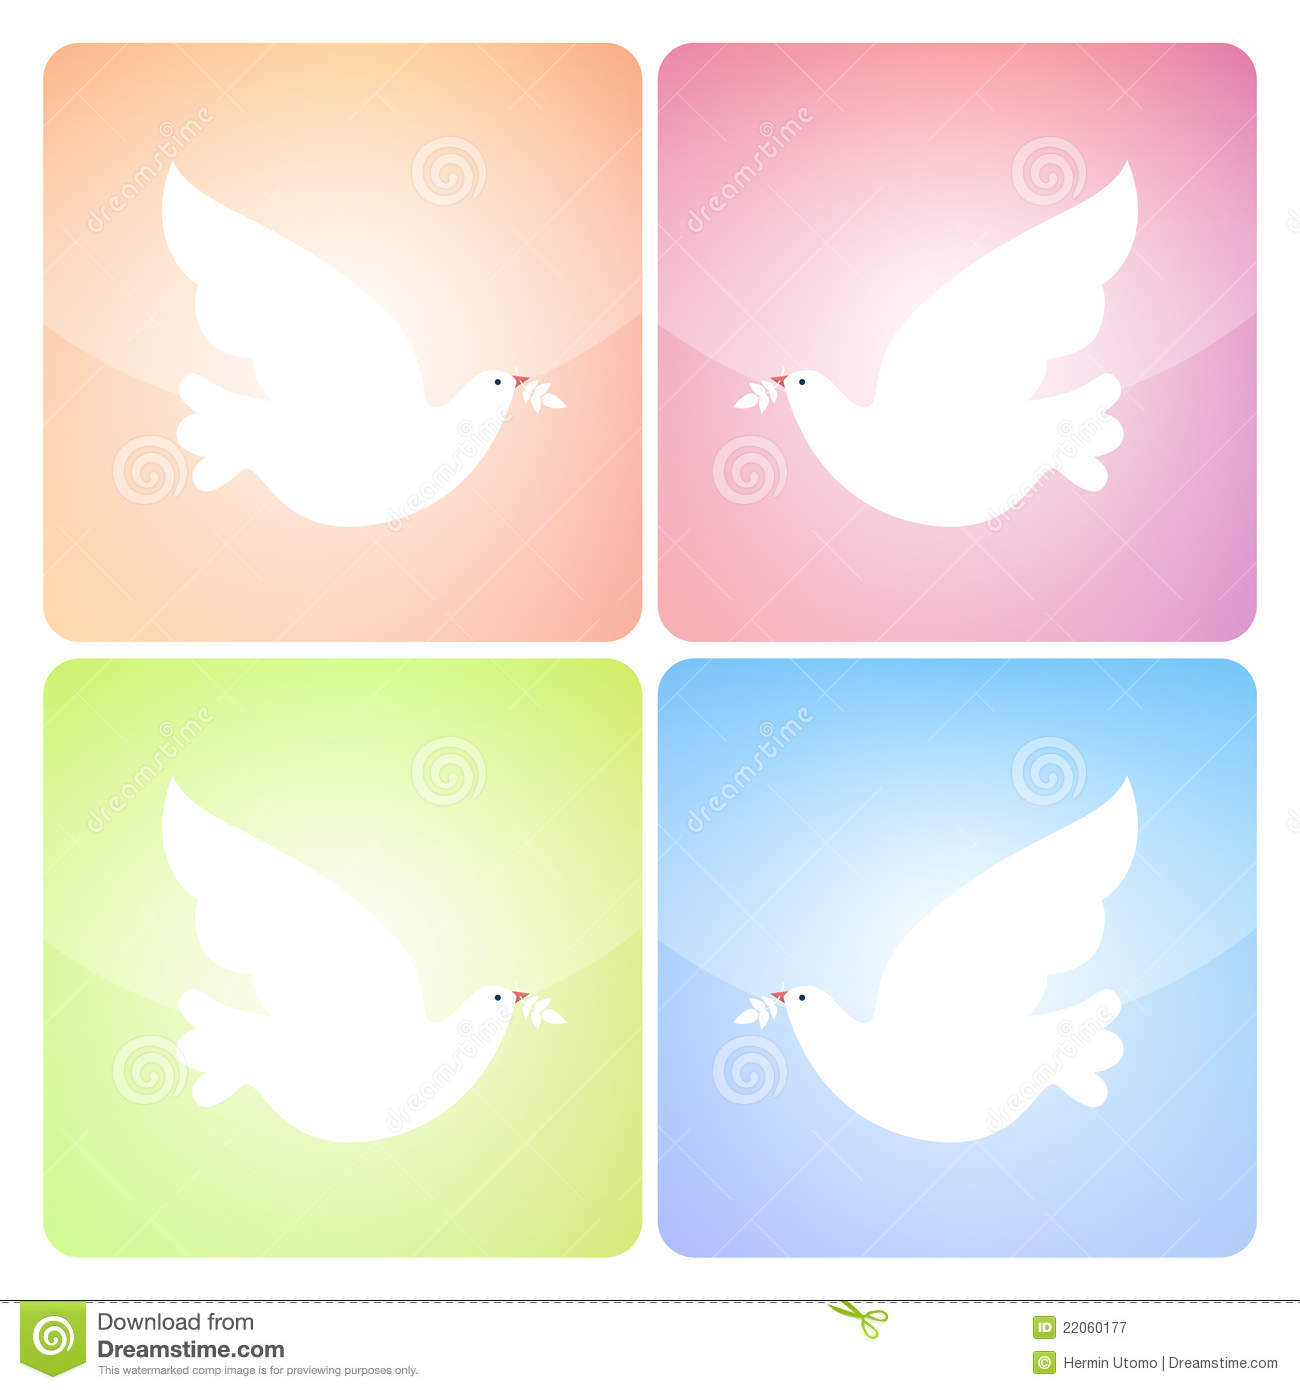 Peaceful Dove Icons Royalty Free Stock Photography Image